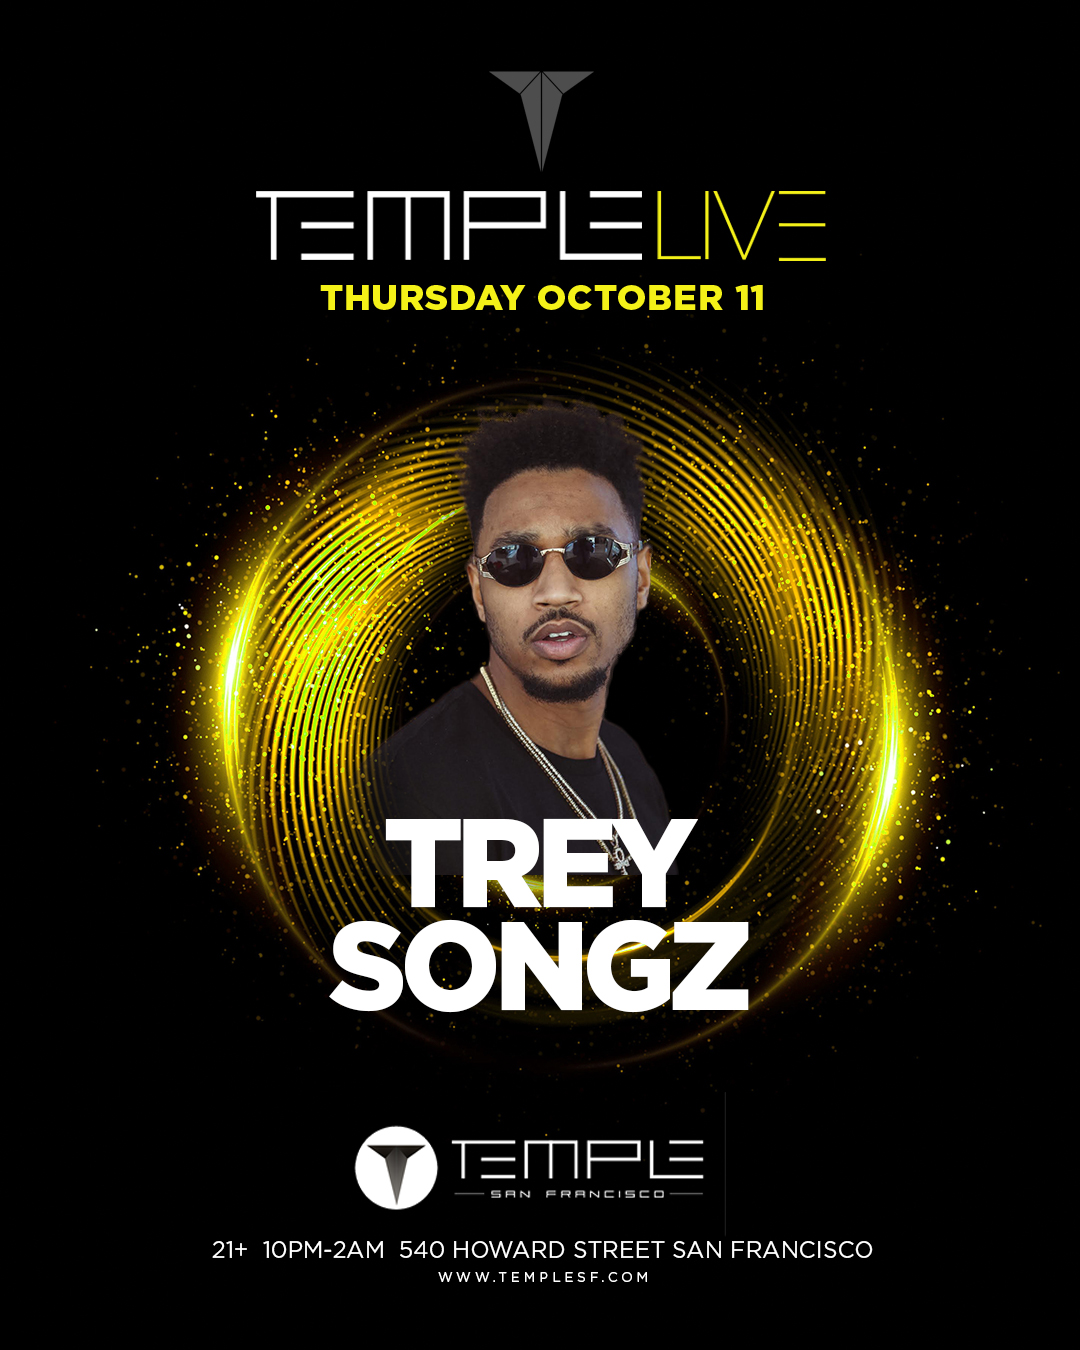 Temple Live Feat Trey Songz At Temple Sf In San Francisco Tickets